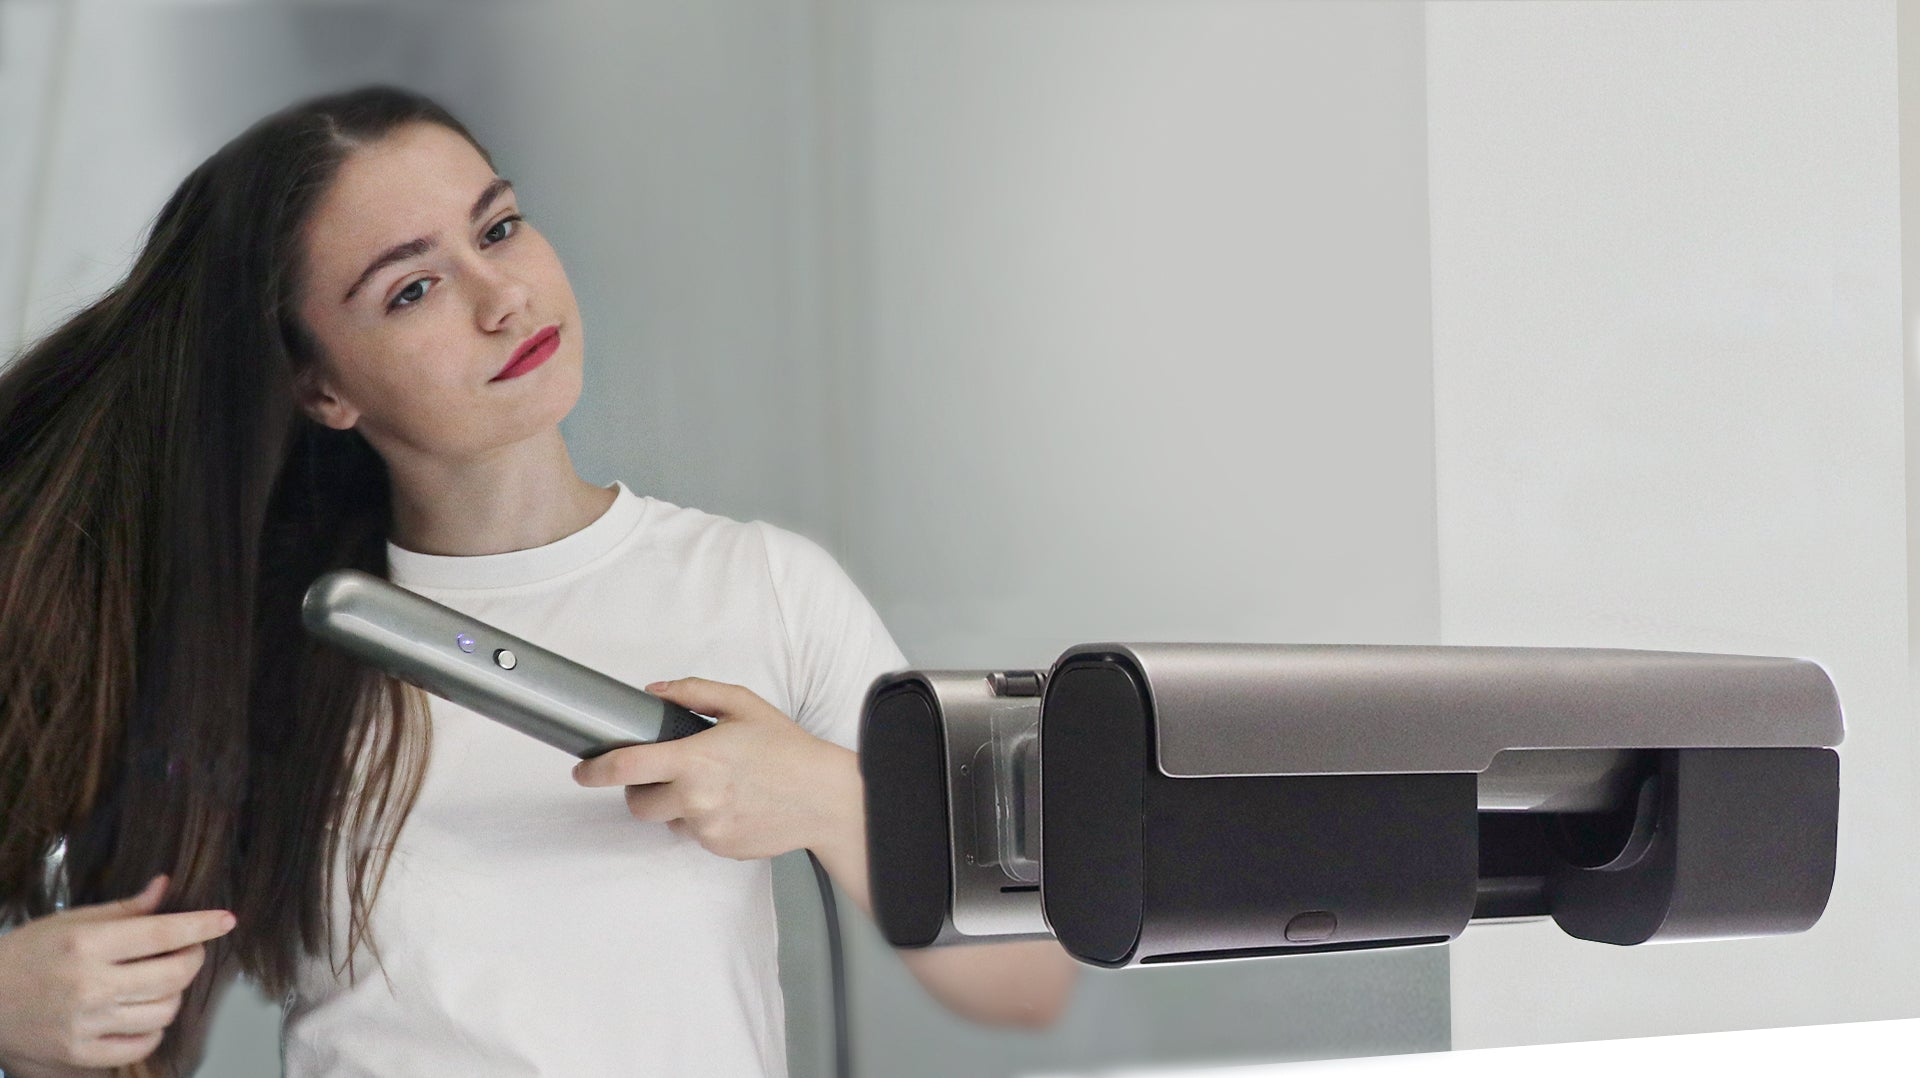 Hair and Hand Dryer Fast Dry in 3 mini